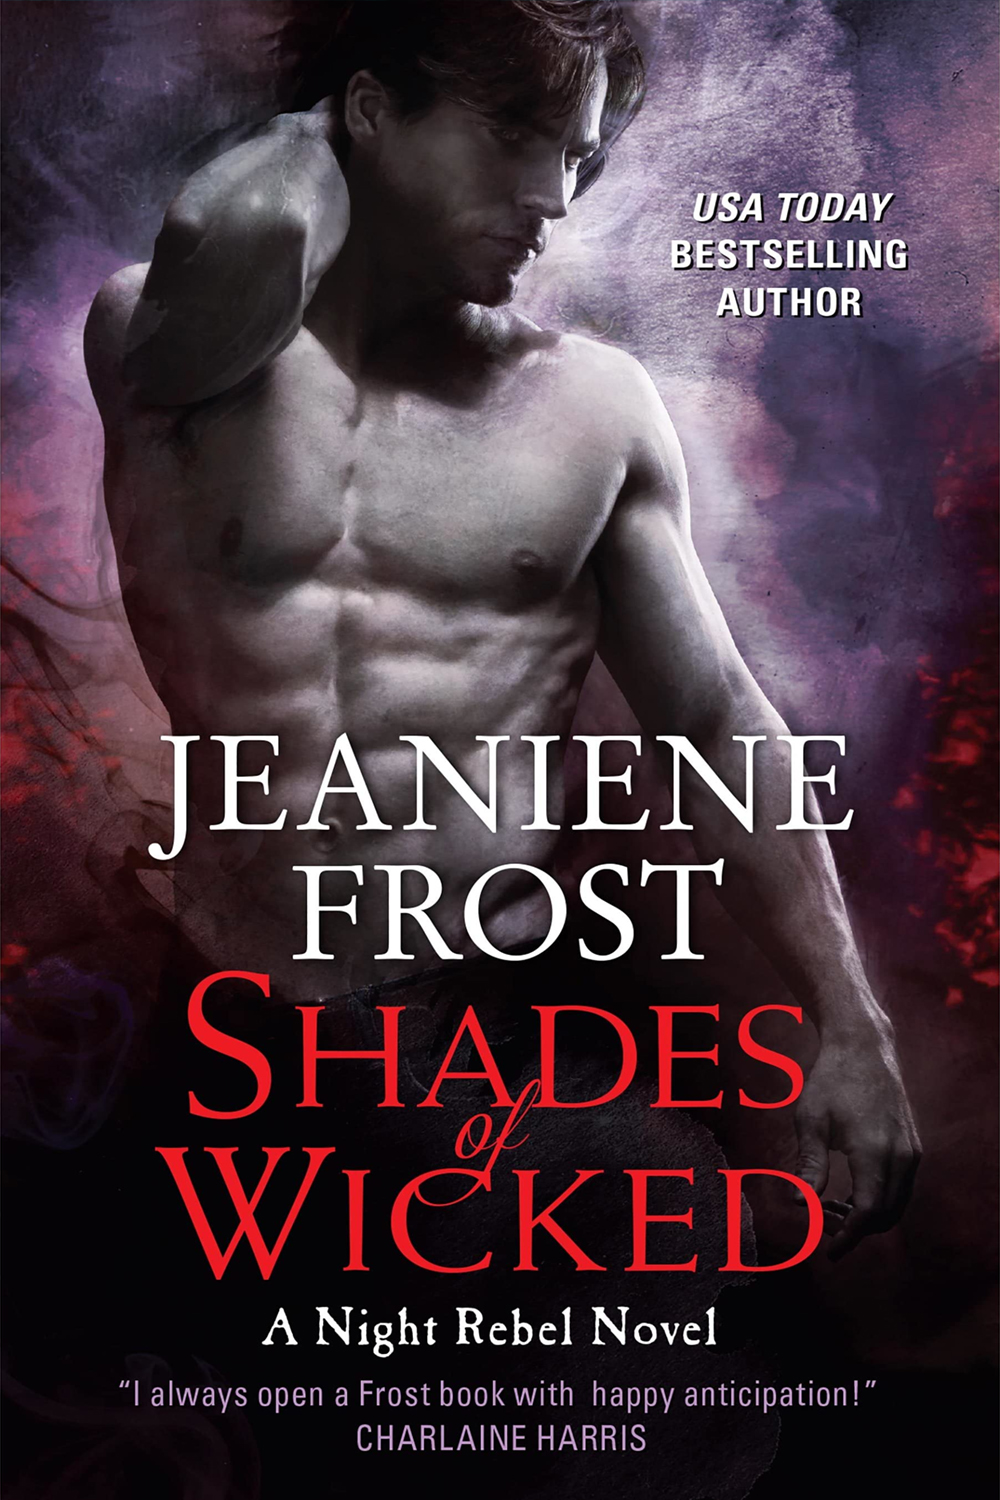 S1 E28 Shades of Wicked by Jeaniene Frost